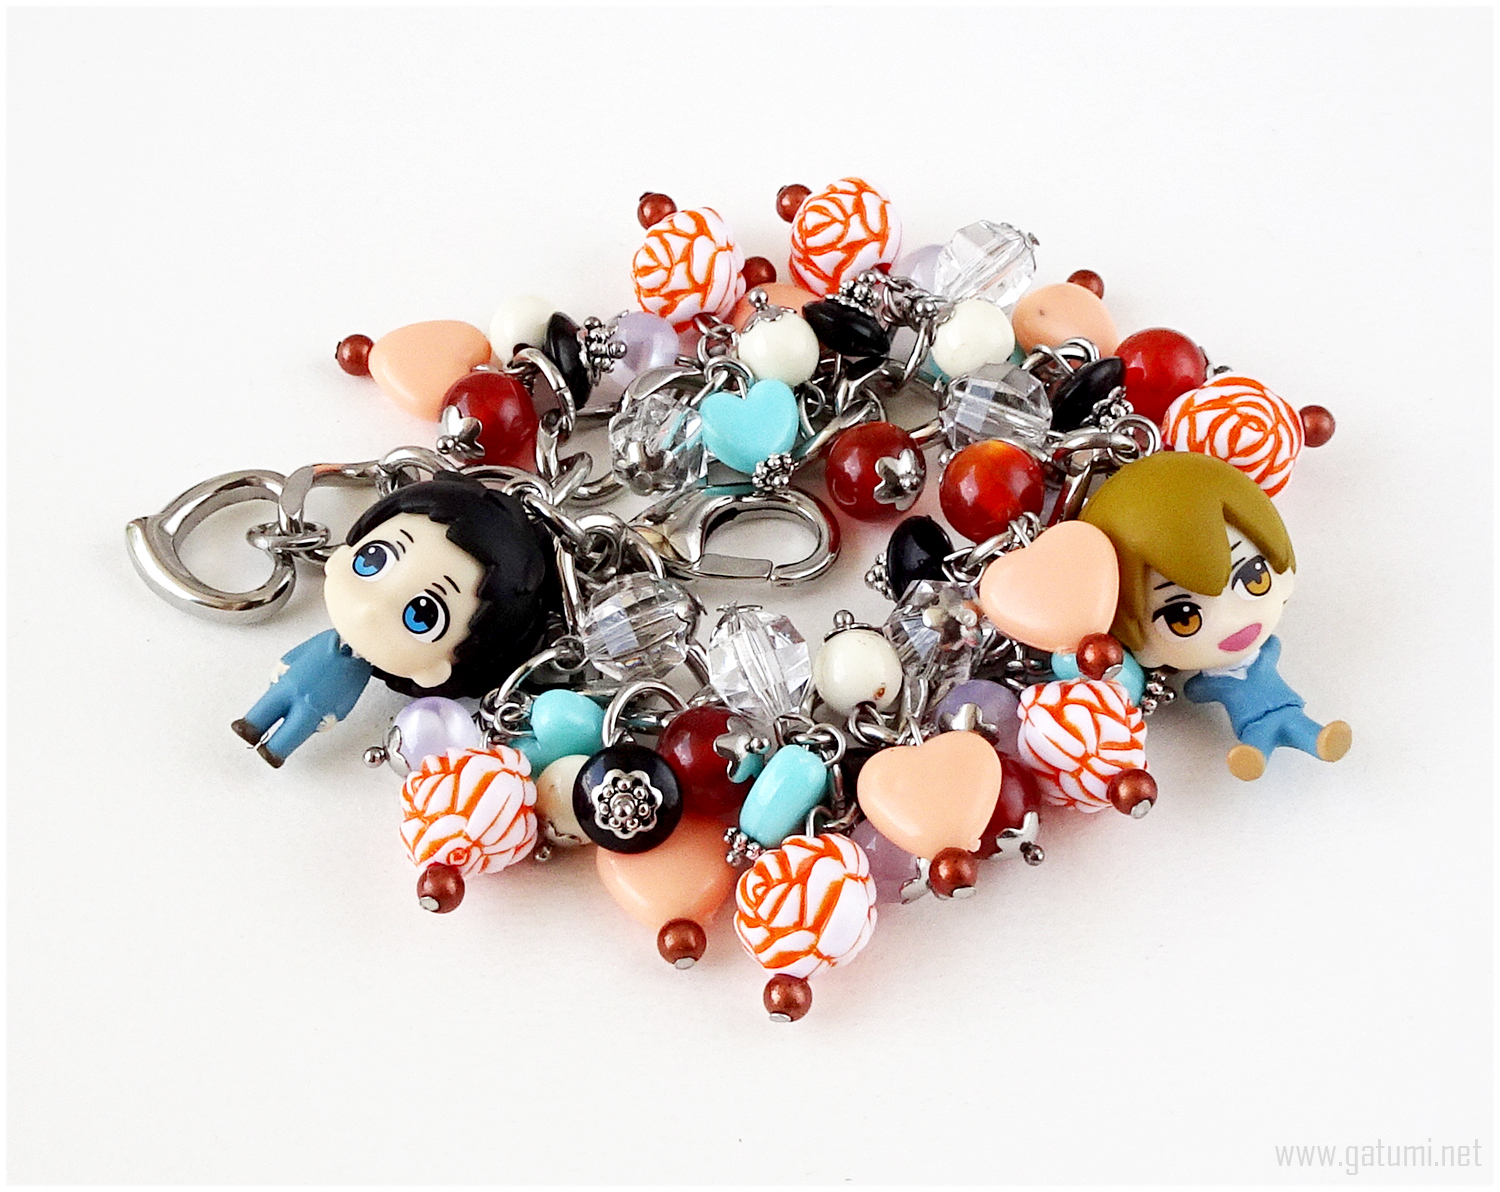 Primary image for Mikado x Masaomi Charm bracelet, Anime Couple, Anime Figures, Kawaii Jewelry